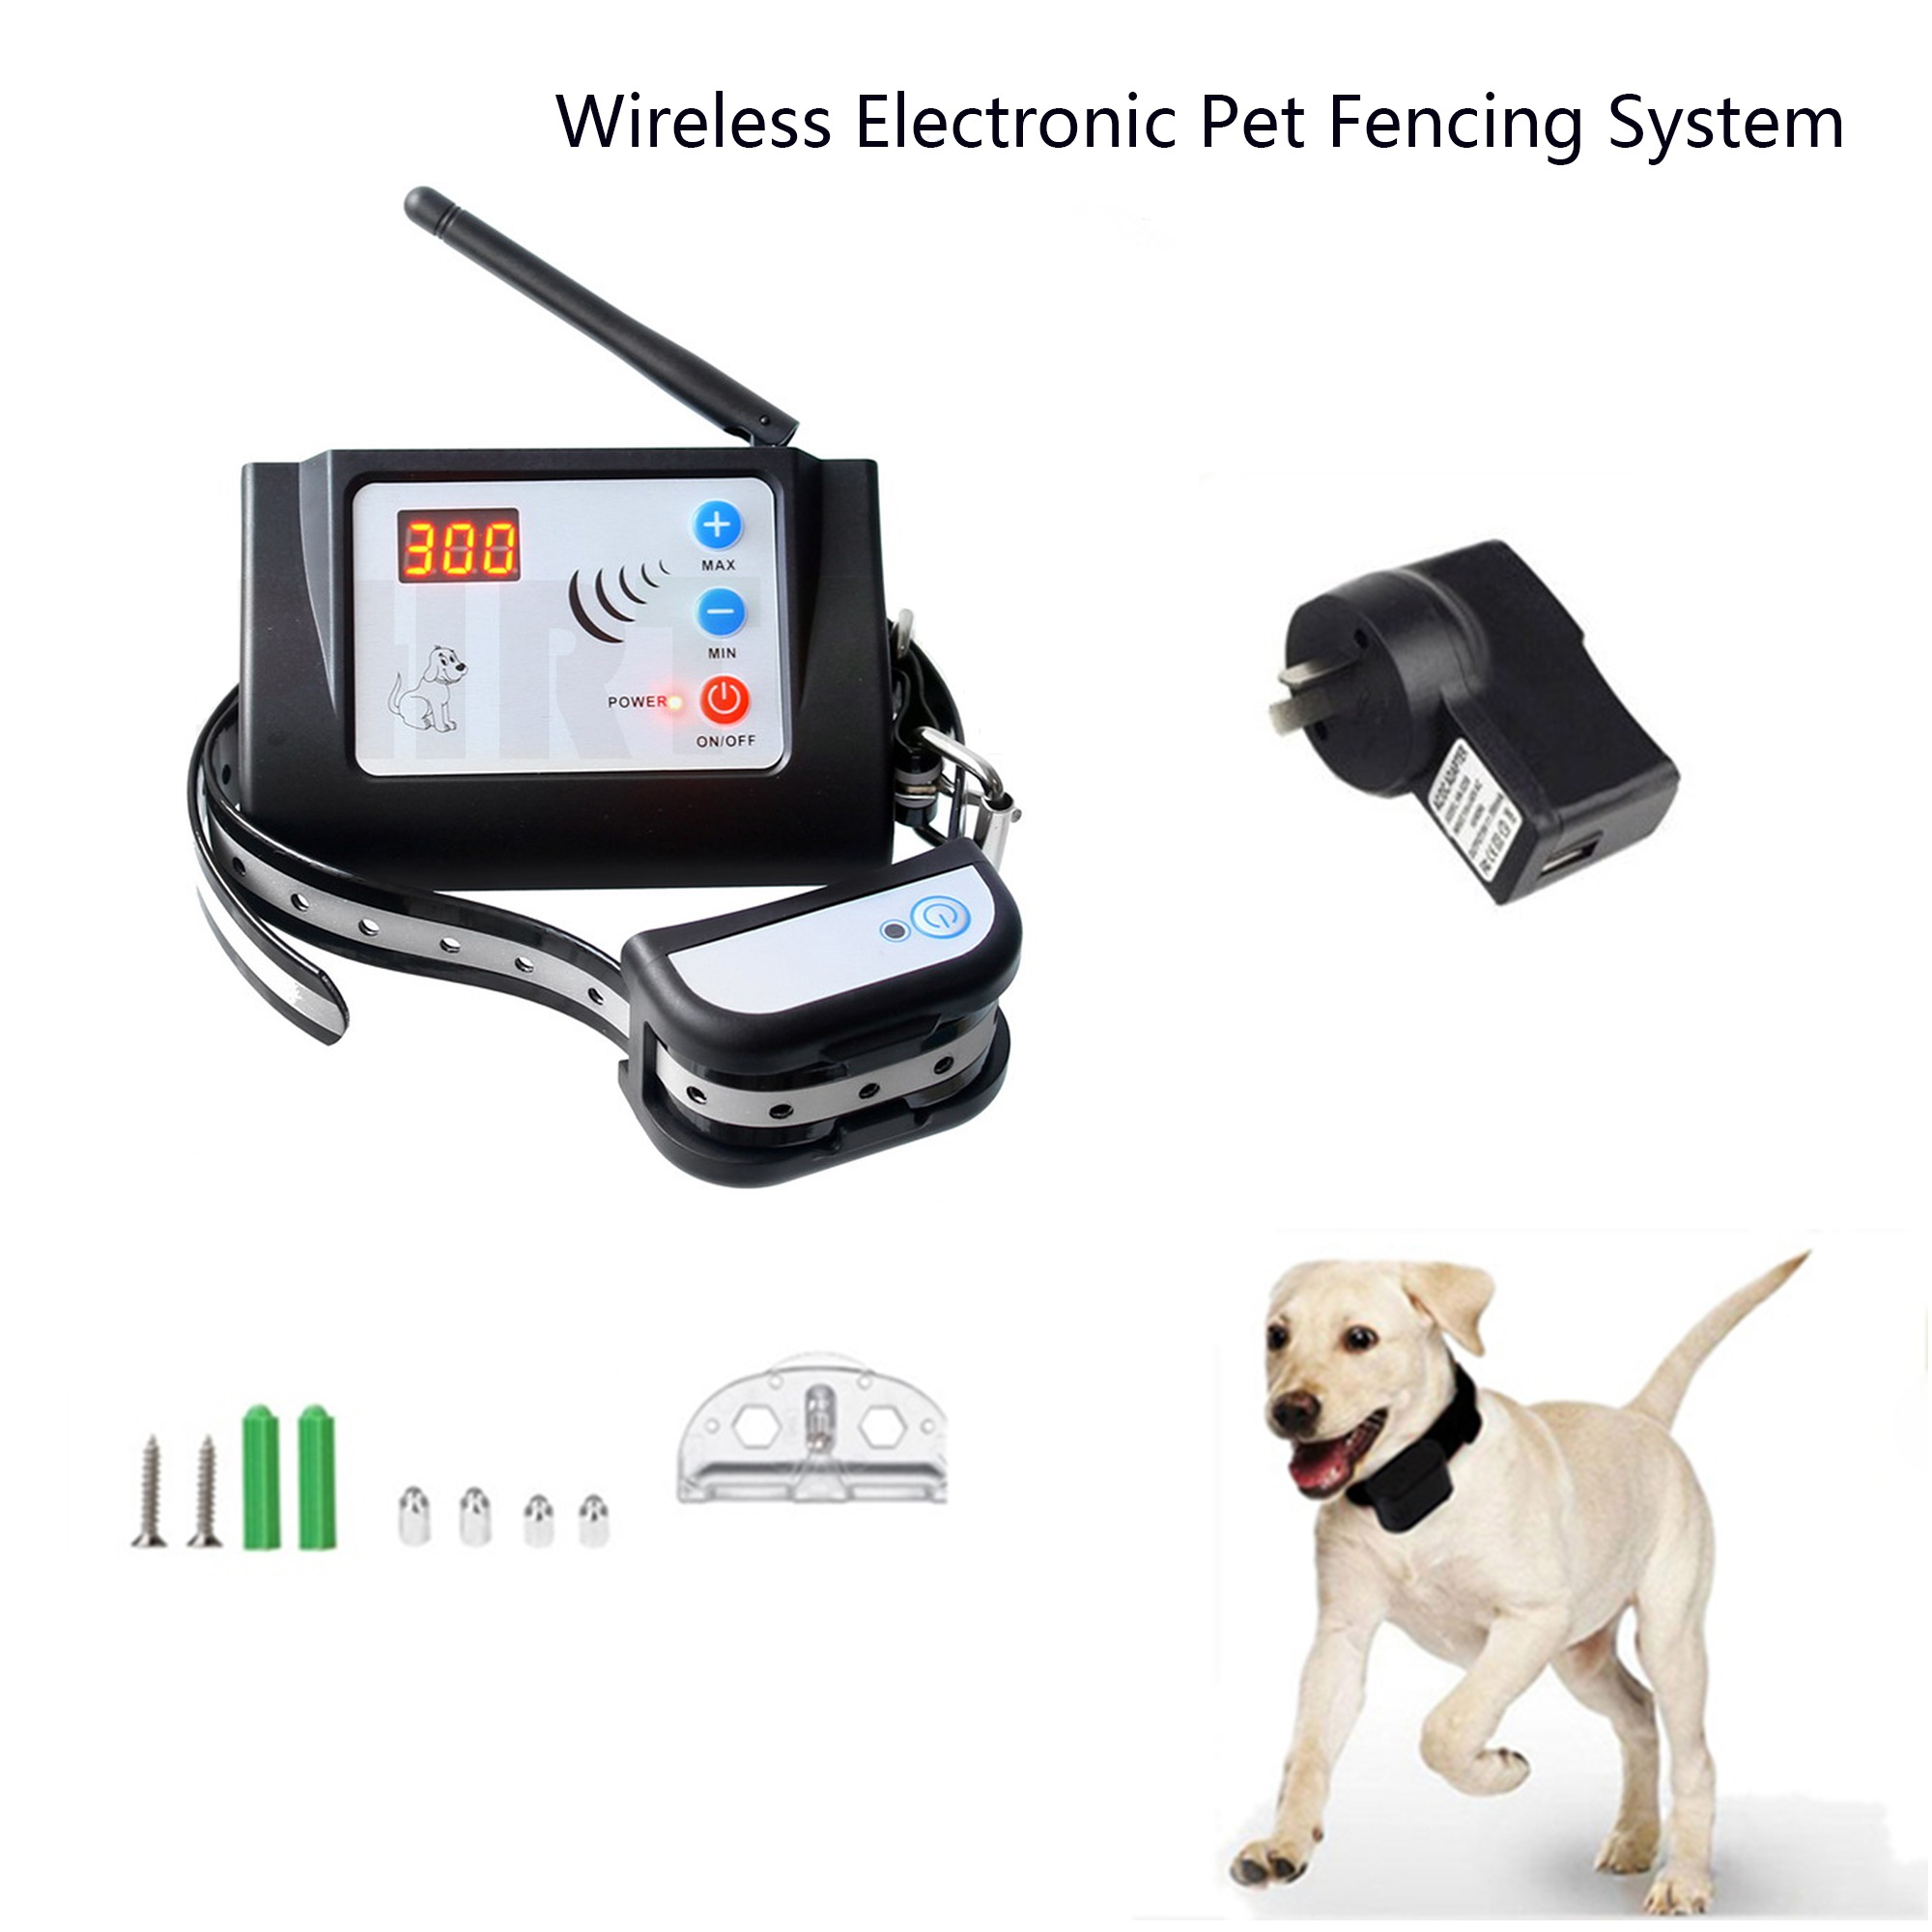 Wireless Remote Dog Fence System Pet Electronic Fencing Device Waterproof Dog Training Collar Electric Shock 0 100 Levels Kd 661 Houses Kennels Pens Aliexpress